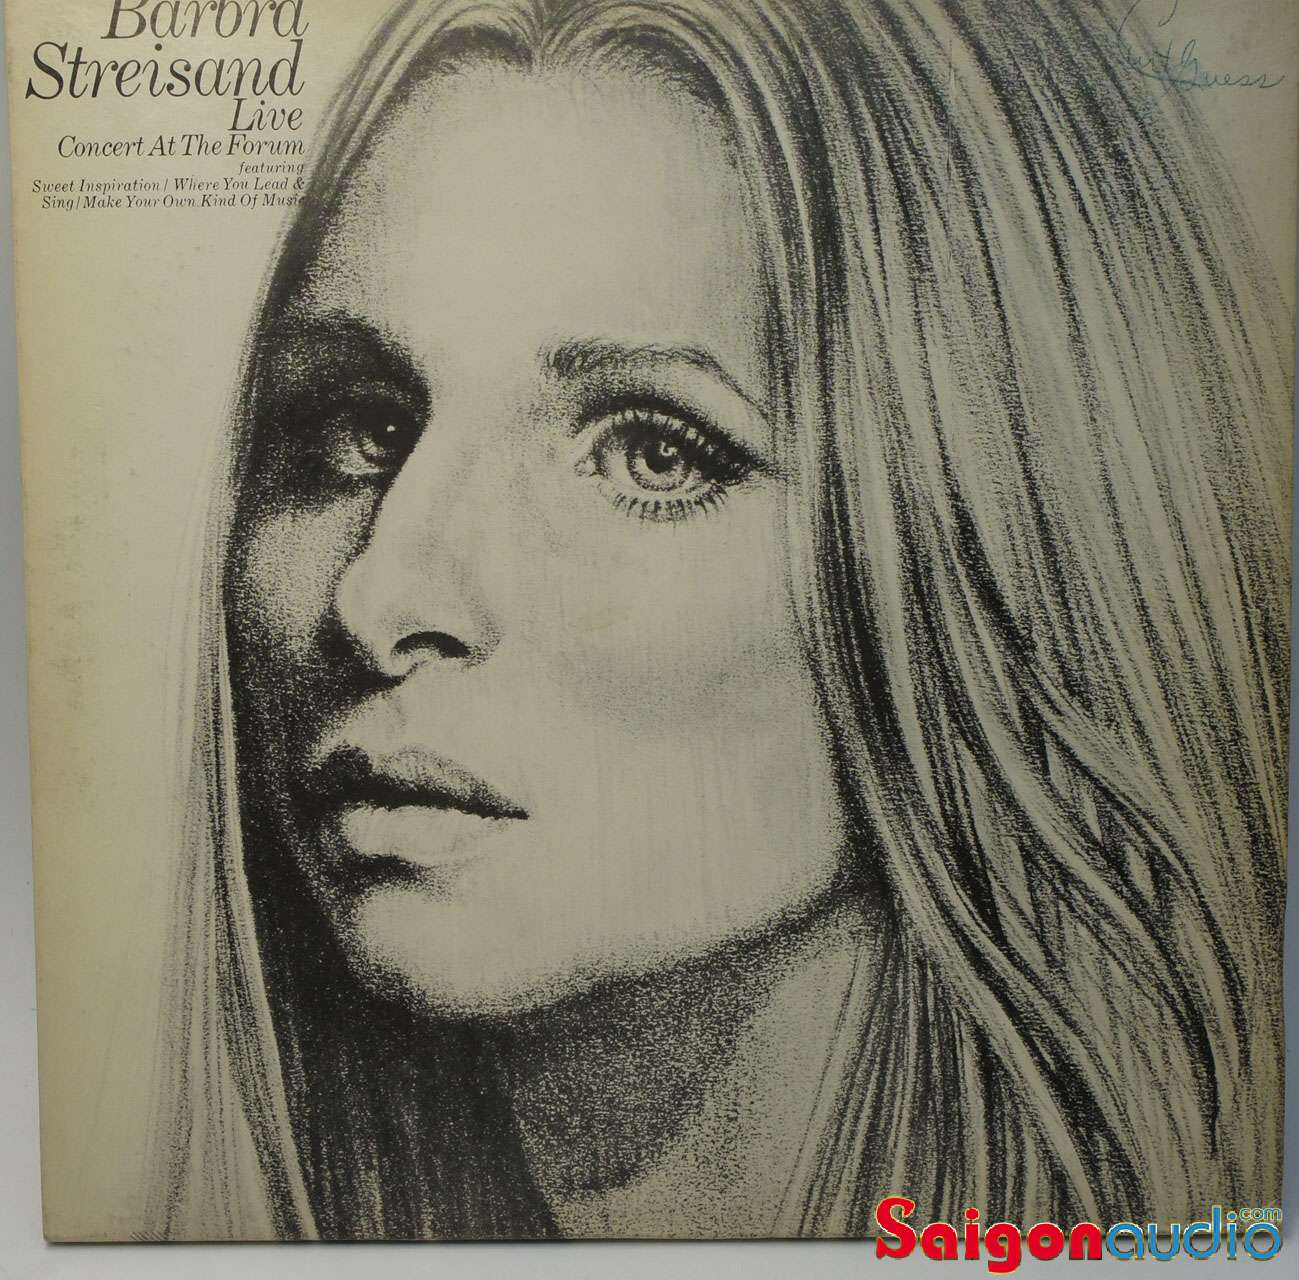 Đĩa than LP Barbra Streisand - Live Concert At The Forum (1972)